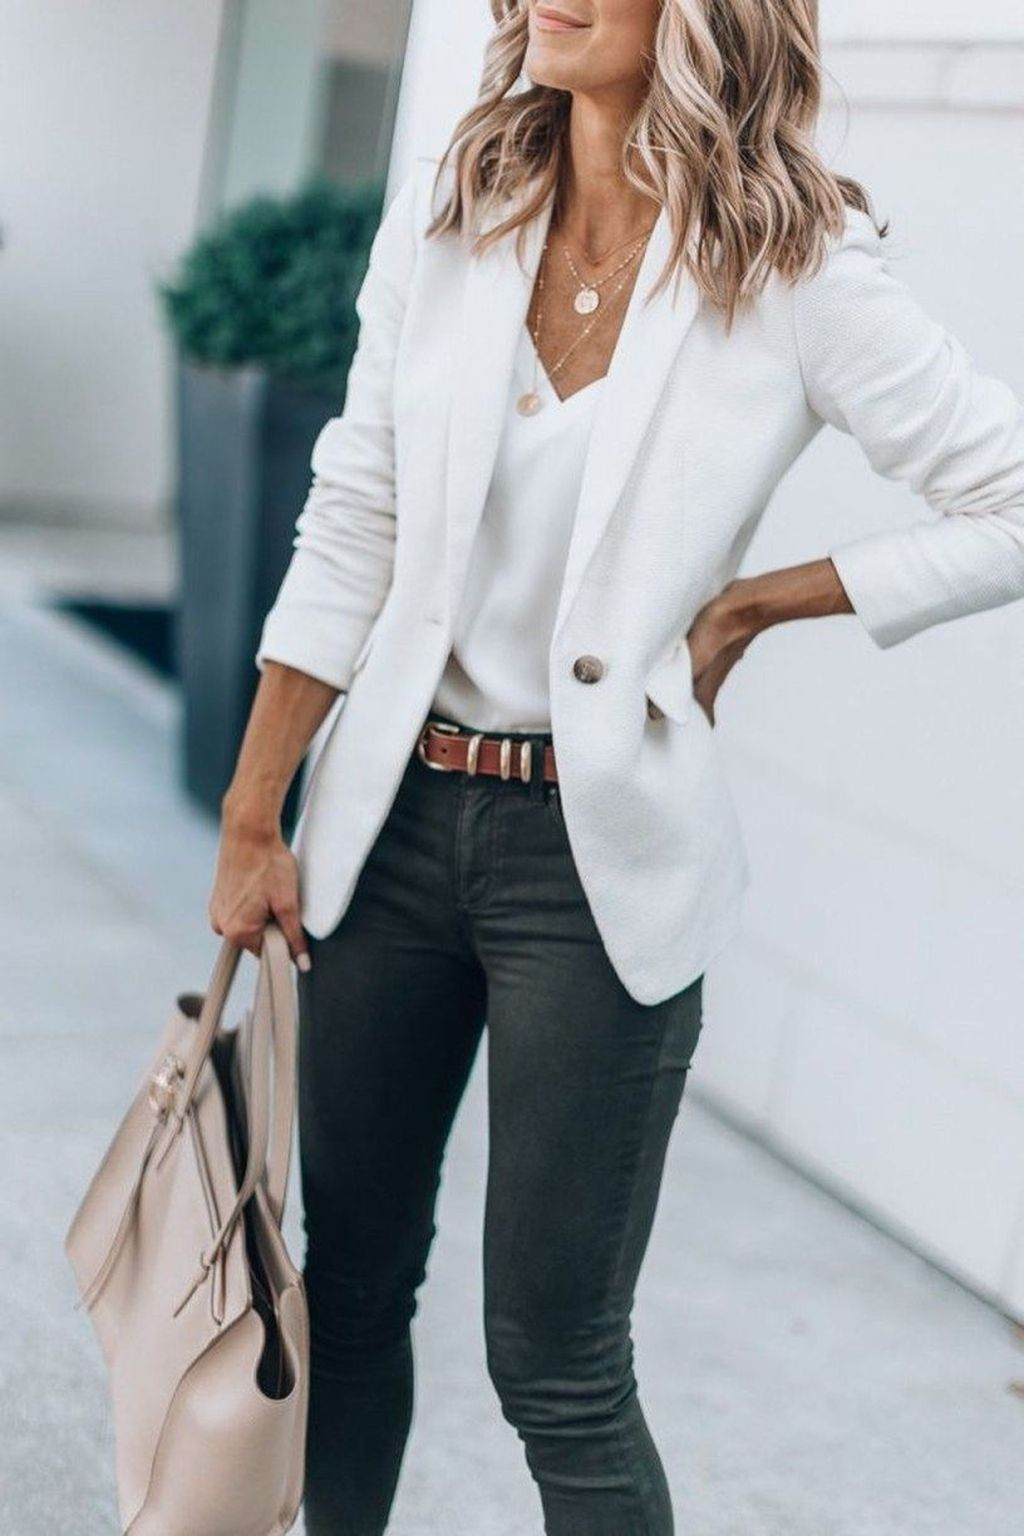 How To Look Stylish At Business Conferences Casual Friday Outfit